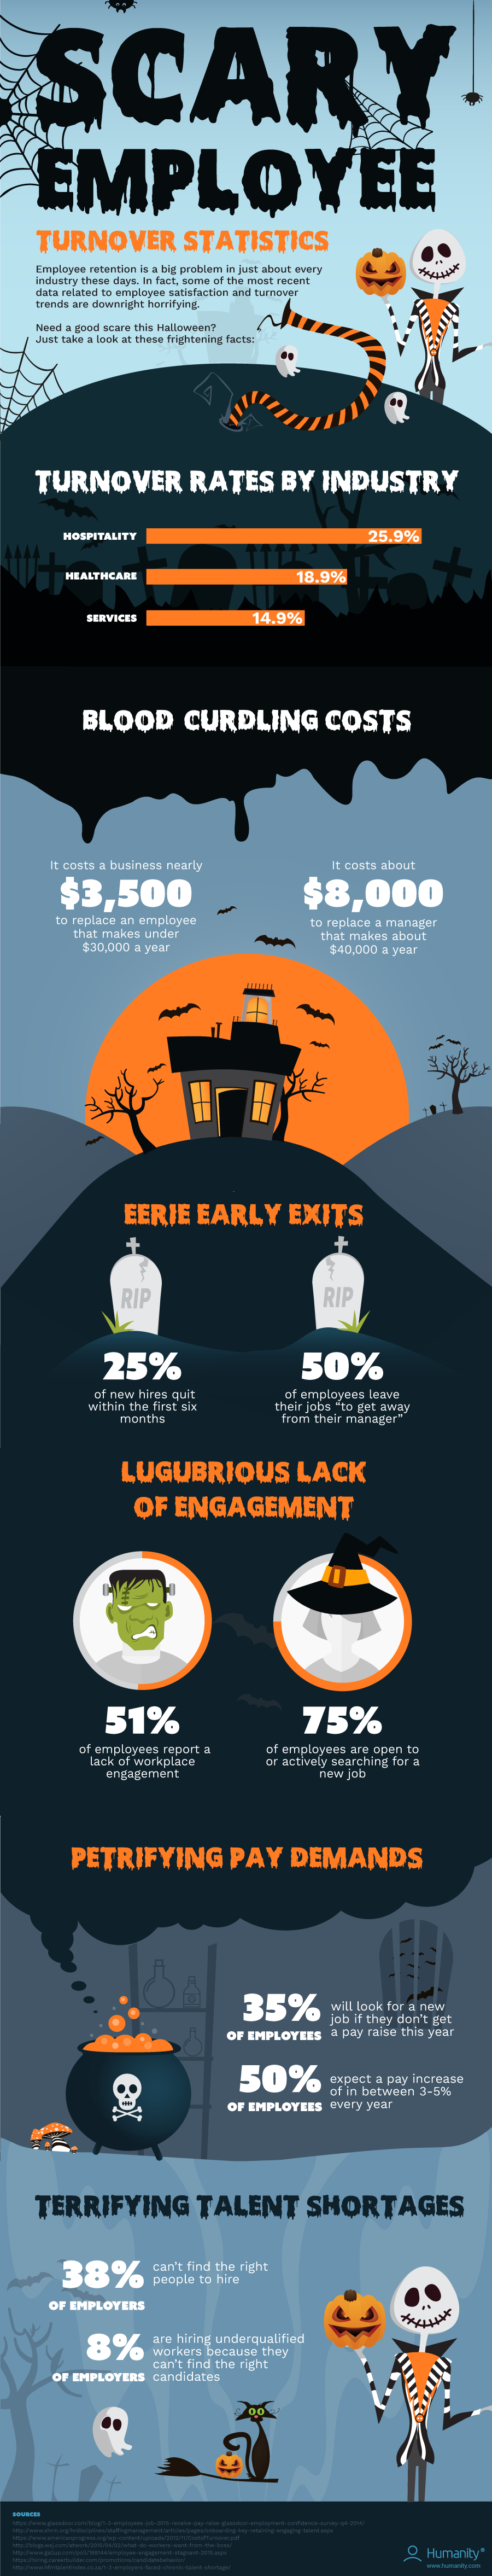 scary-employee-statistic-infographic-plaza